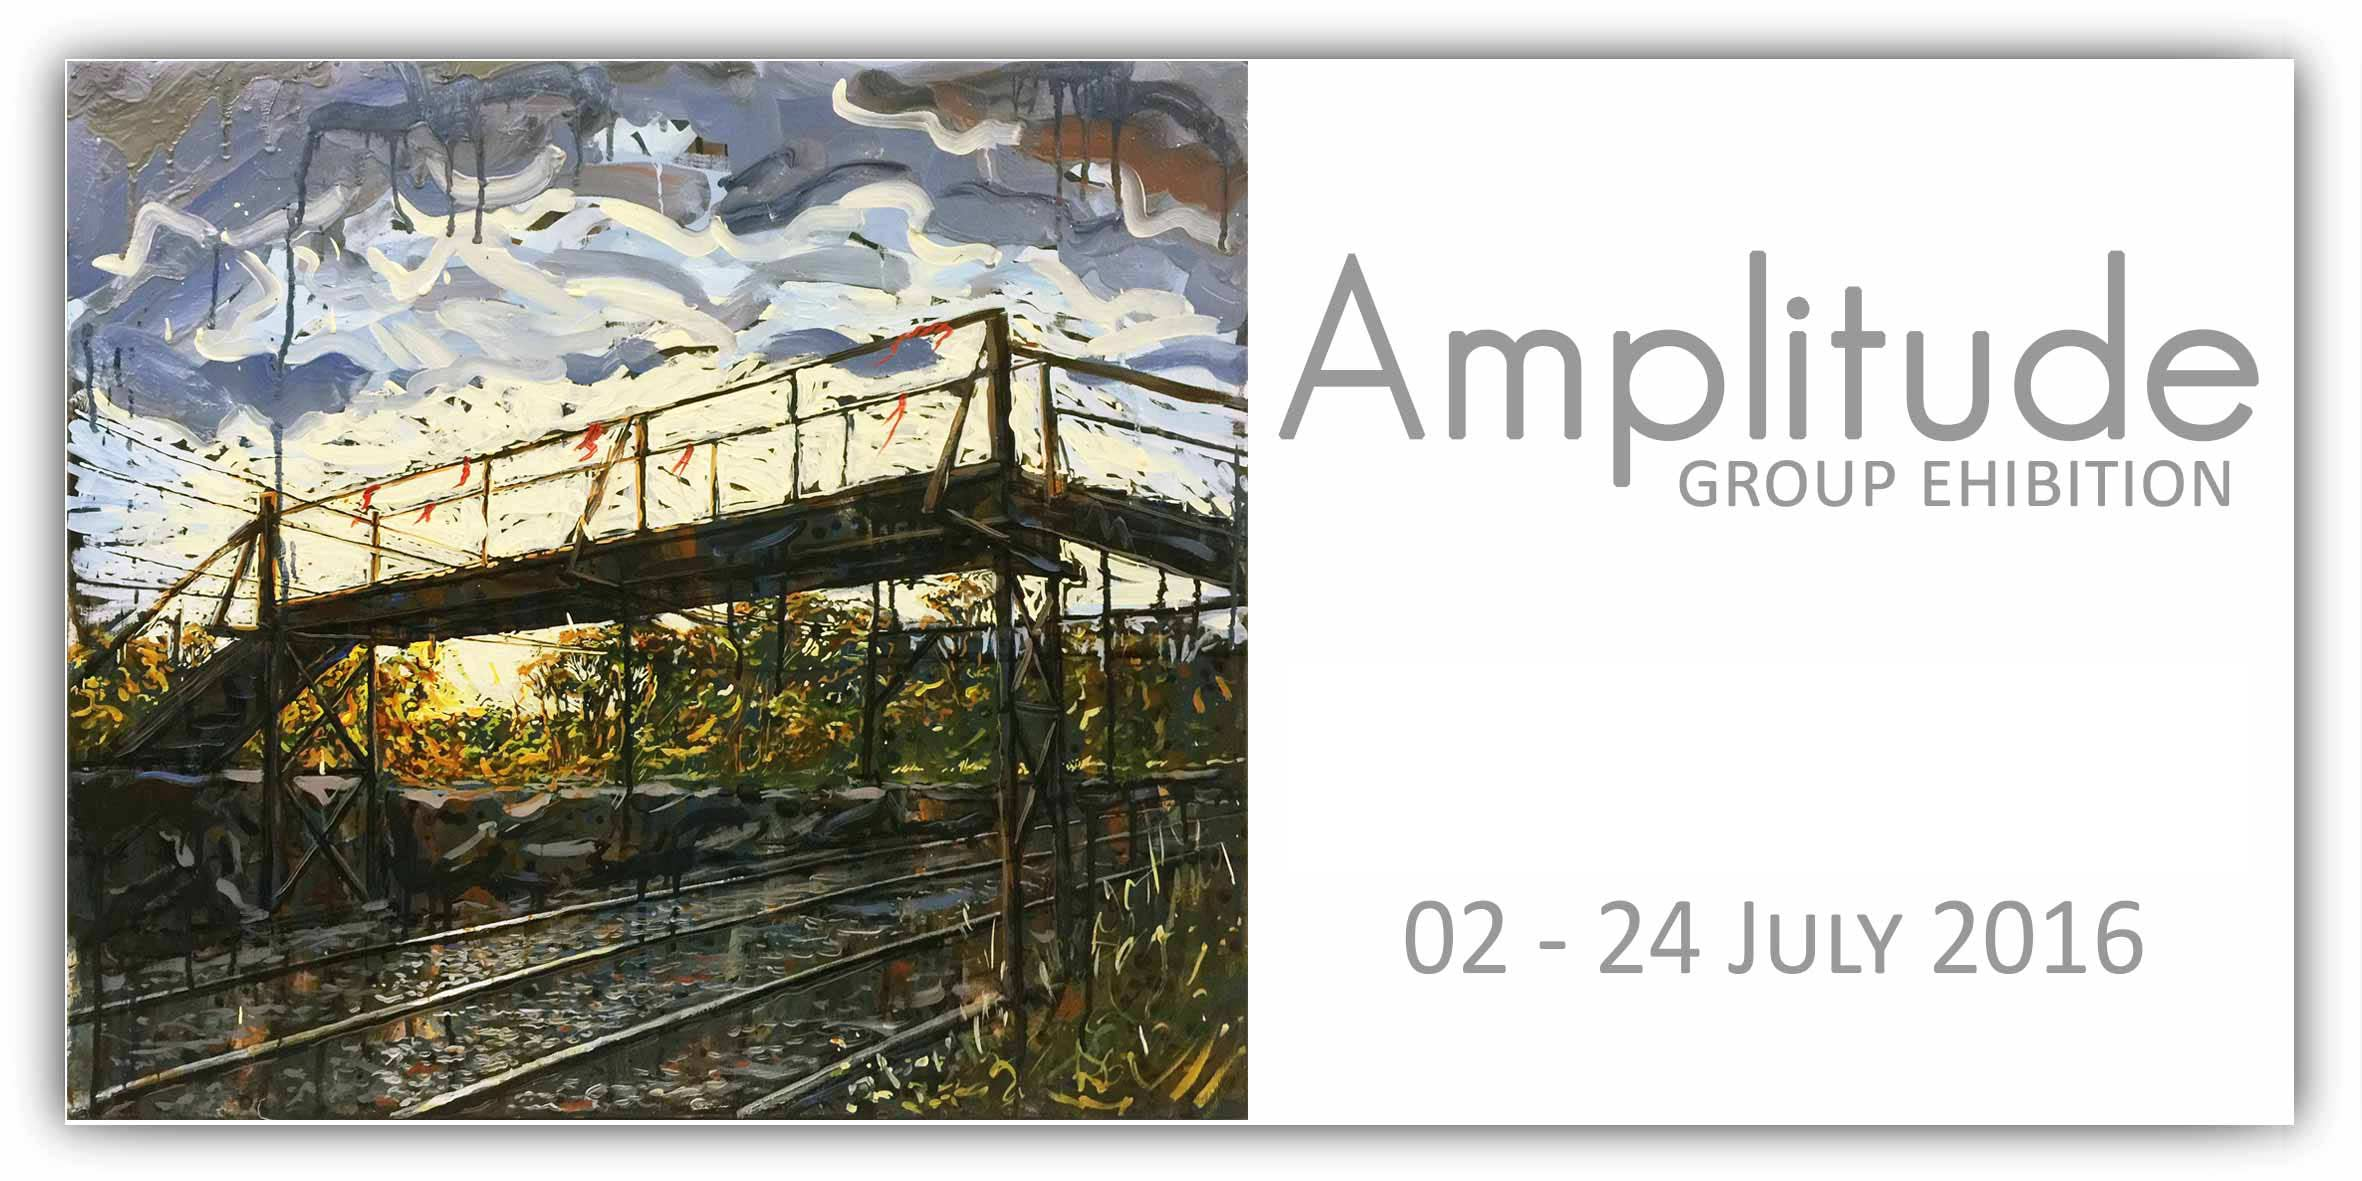 View Exhibition at Artsite Gallery. 02 - 24 July 2016: Amplitude